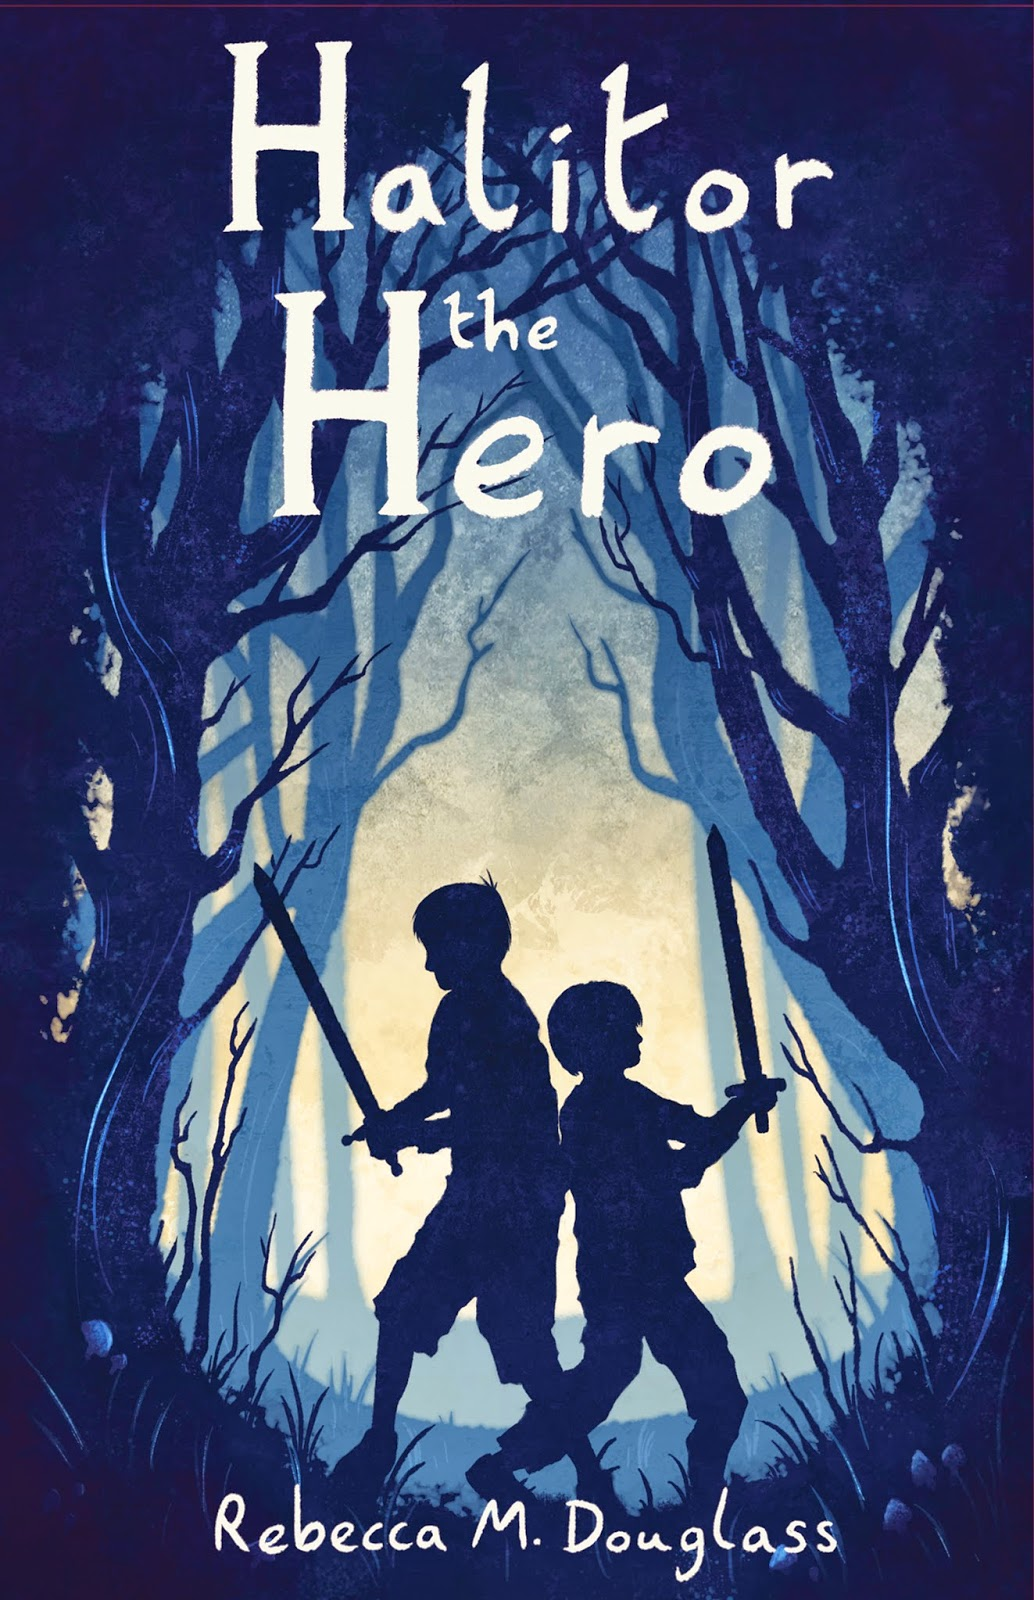 http://www.amazon.com/Halitor-Hero-Rebecca-M-Douglass-ebook/dp/B00O7WX8Q0/ref=sr_1_1?ie=UTF8&qid=1413087083&sr=8-1&keywords=halitor+the+hero